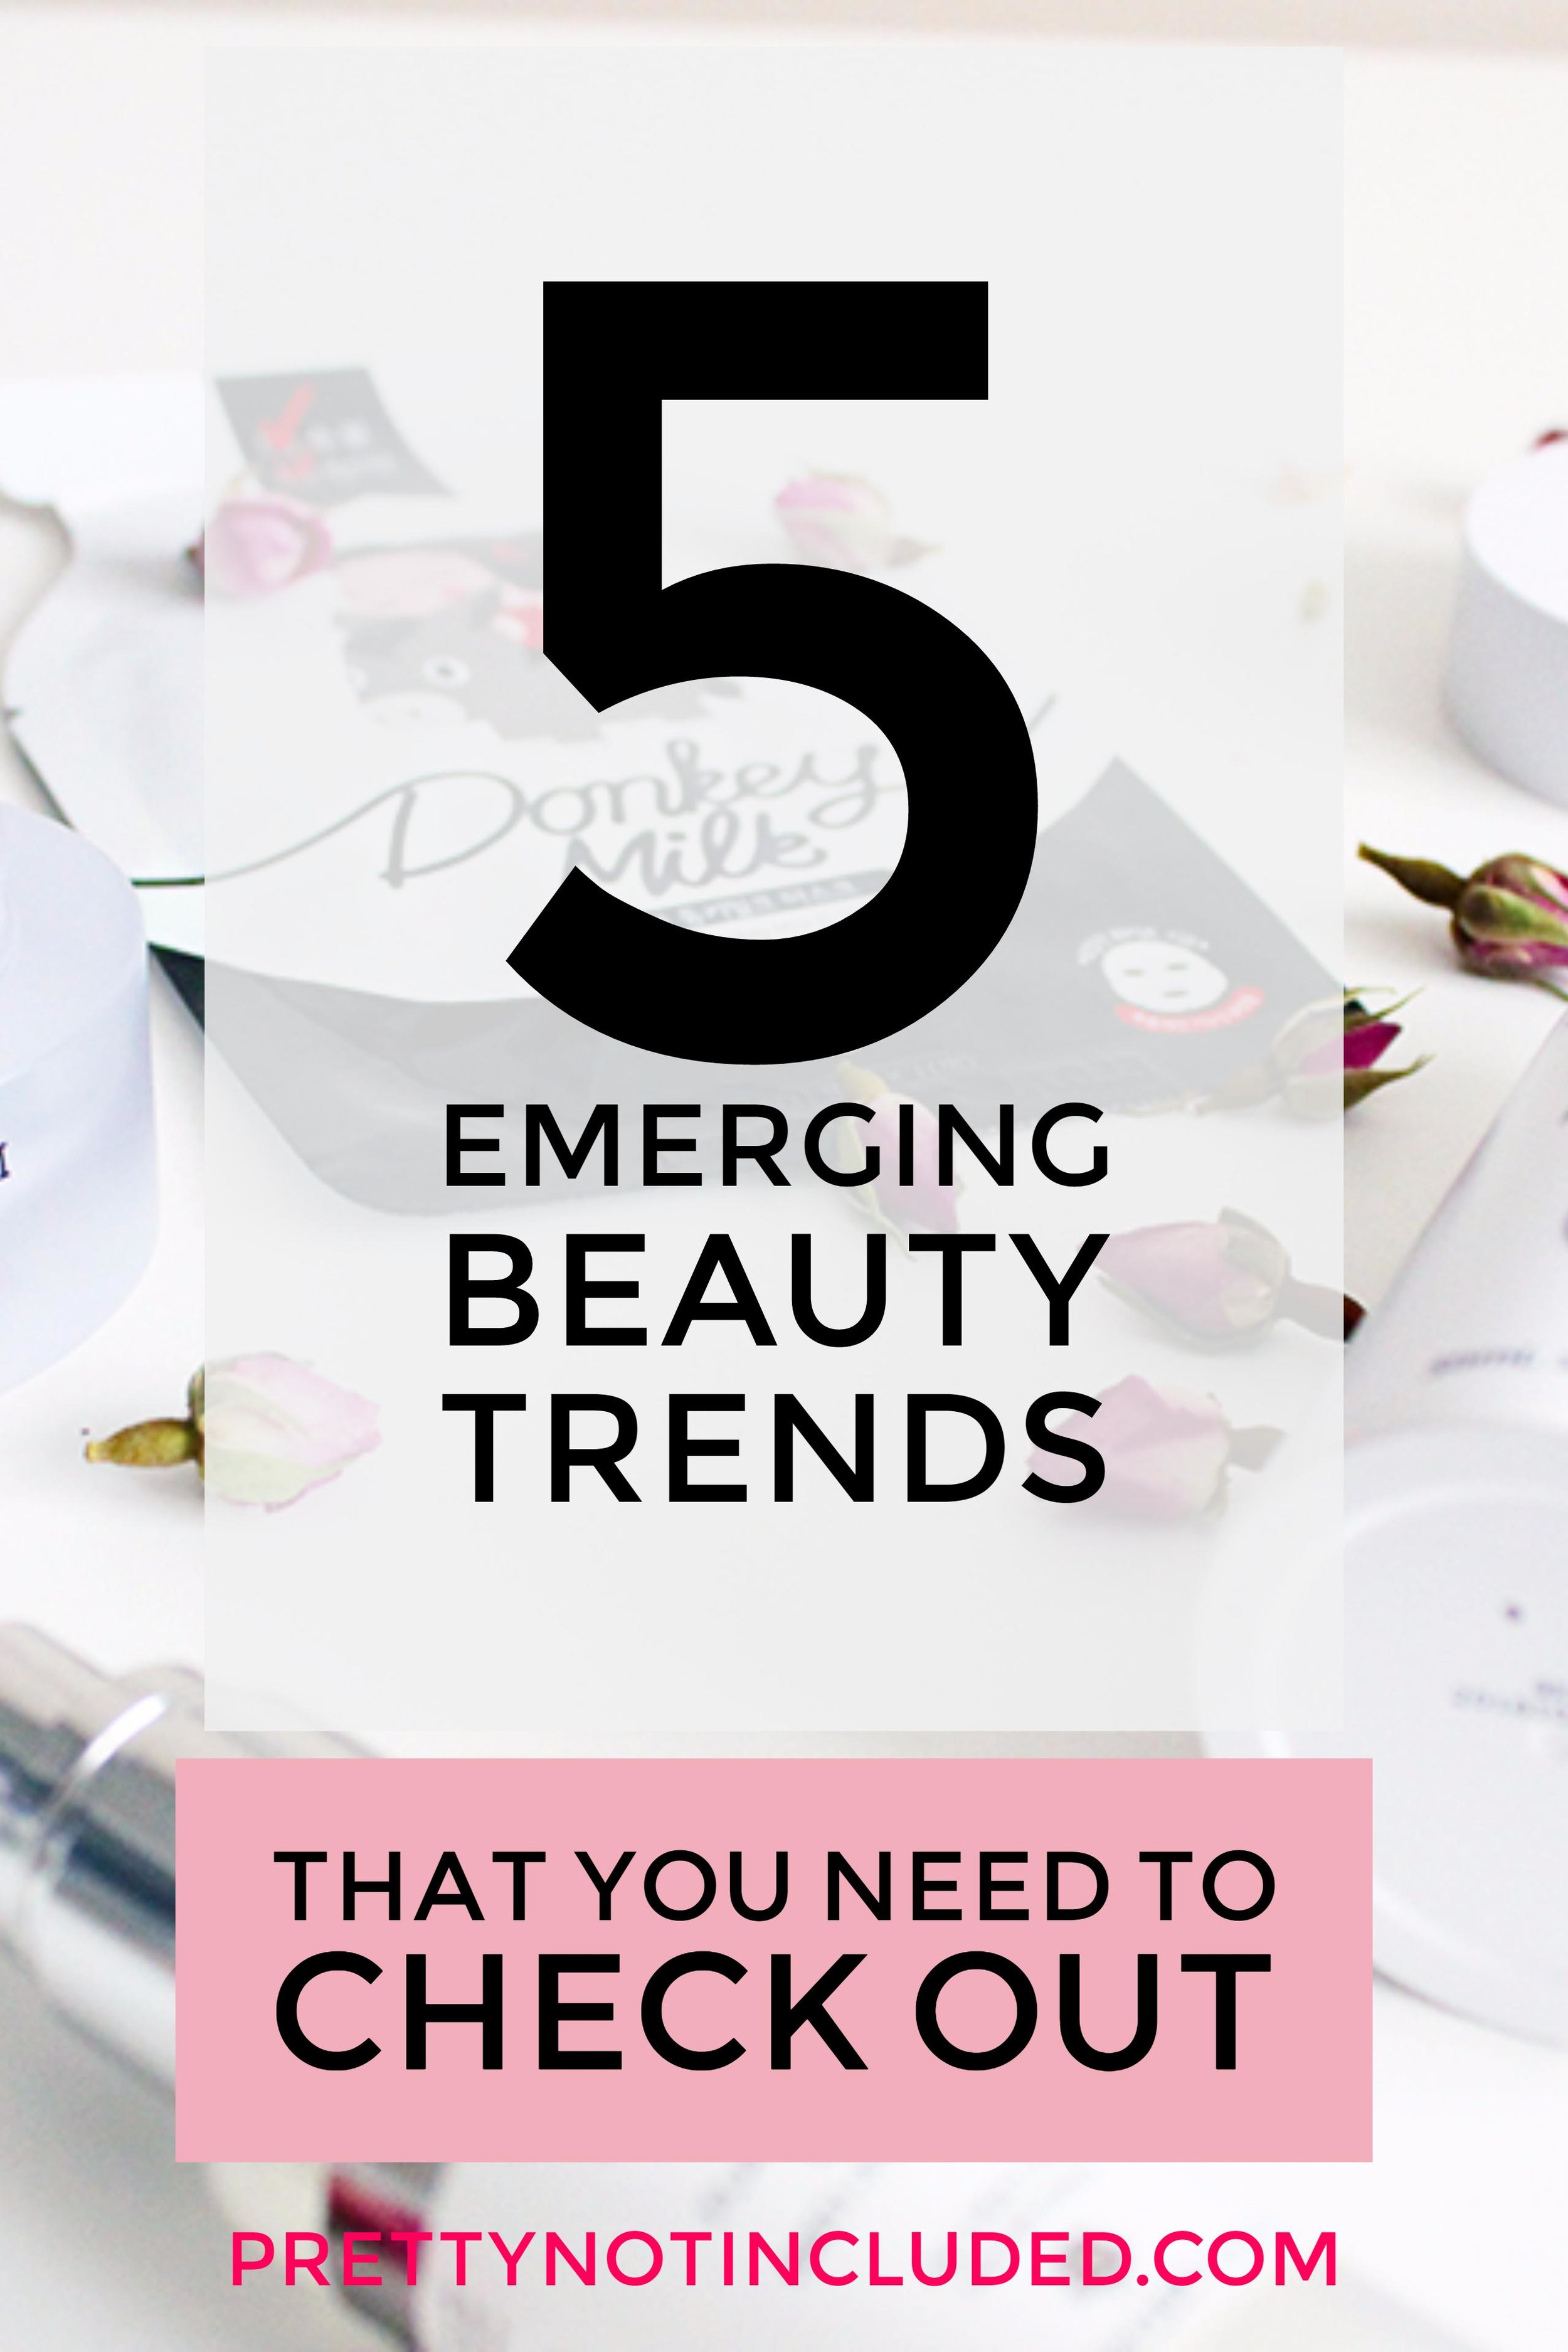 5 Emerging Beauty Trends That You Need To Check Out For 2017